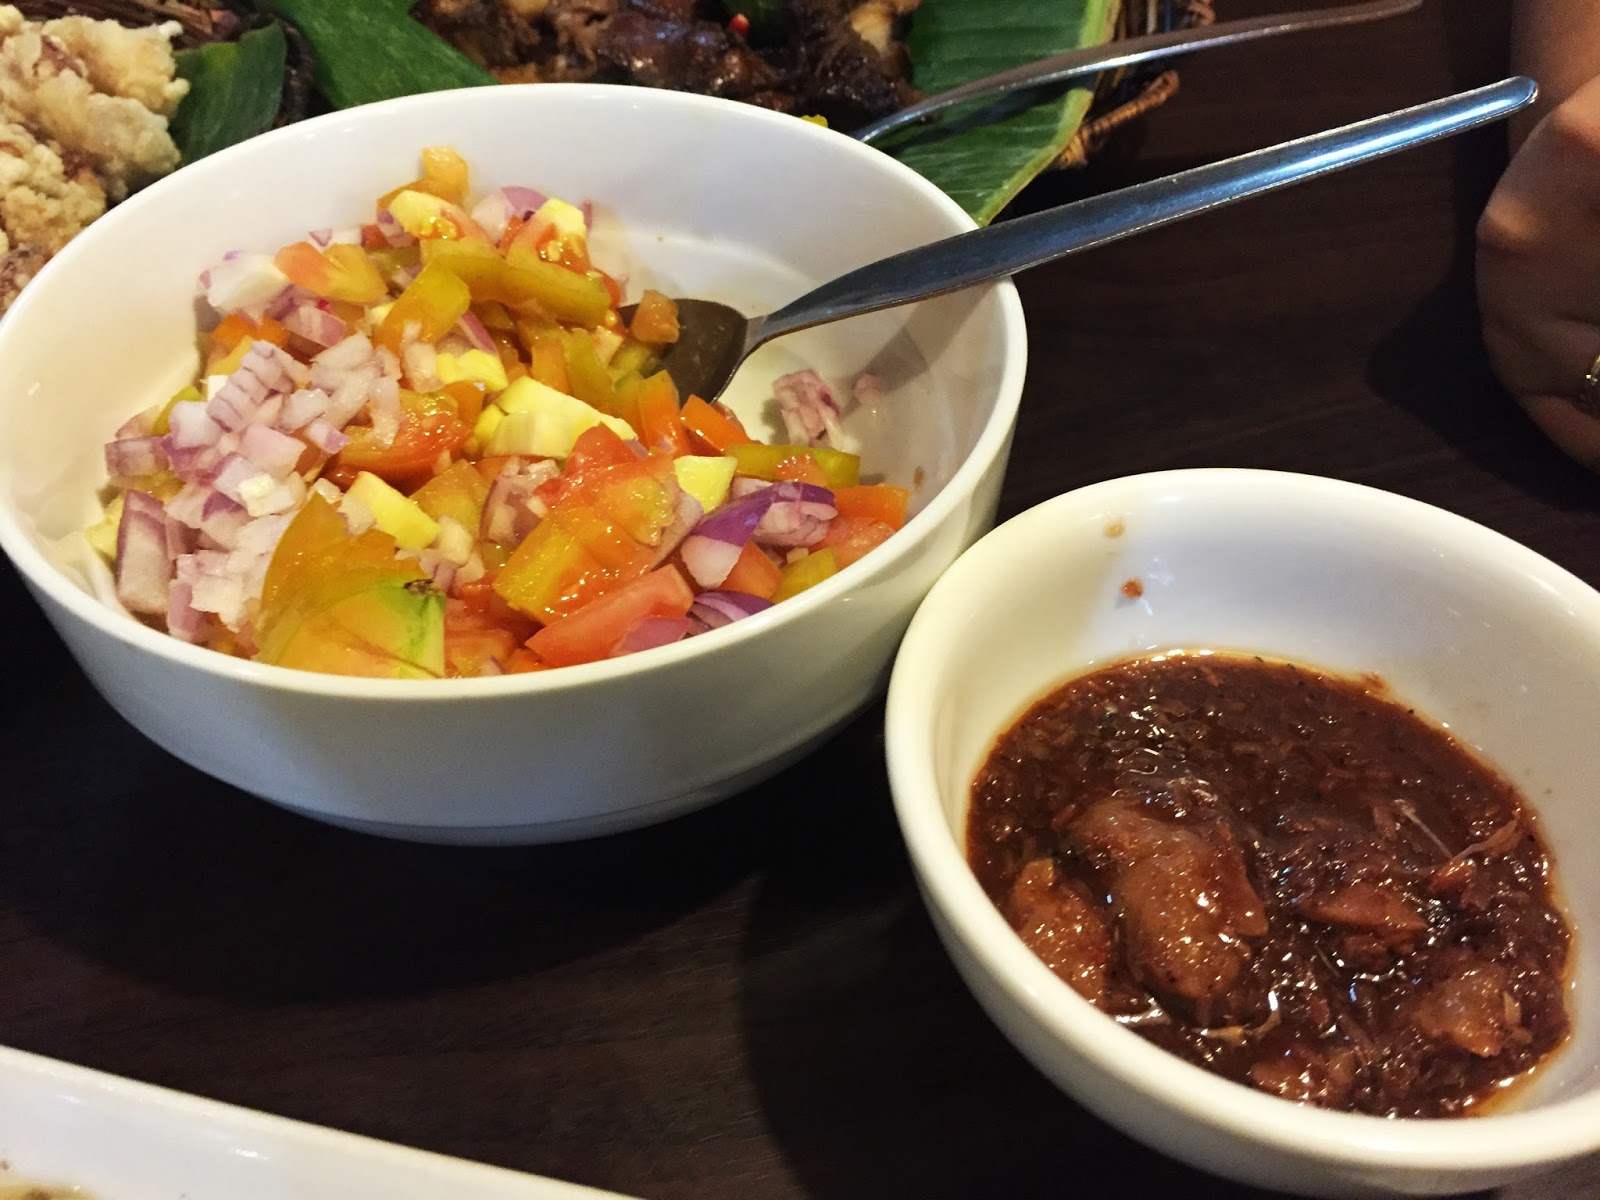 Filipino Food at dampa sa Tarlac Seafood Restaurant: Ensaladang Mangga